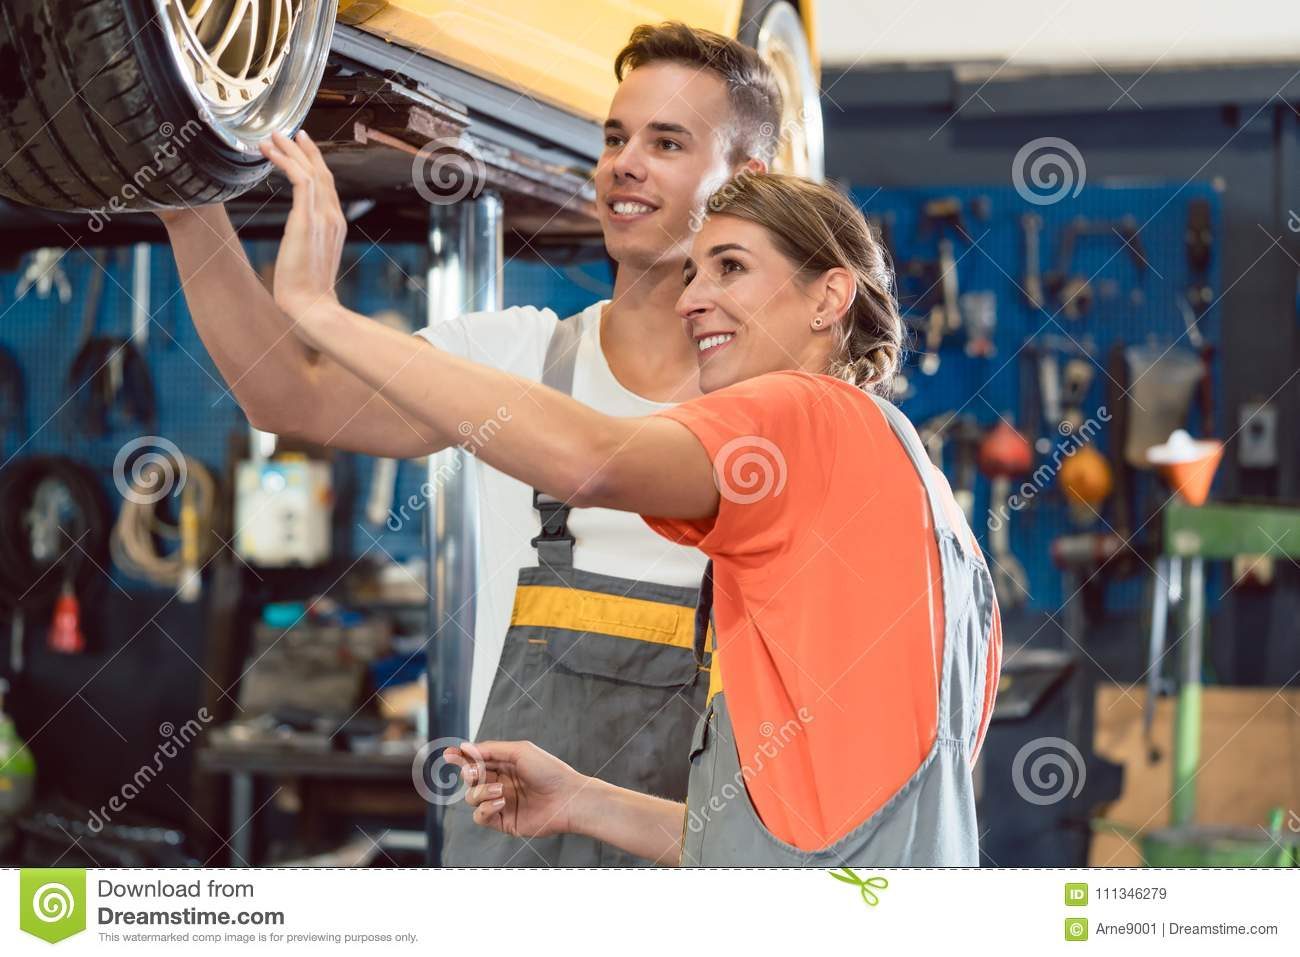 Two dedicated auto mechanics smiling while checking the wheels of a tuned car